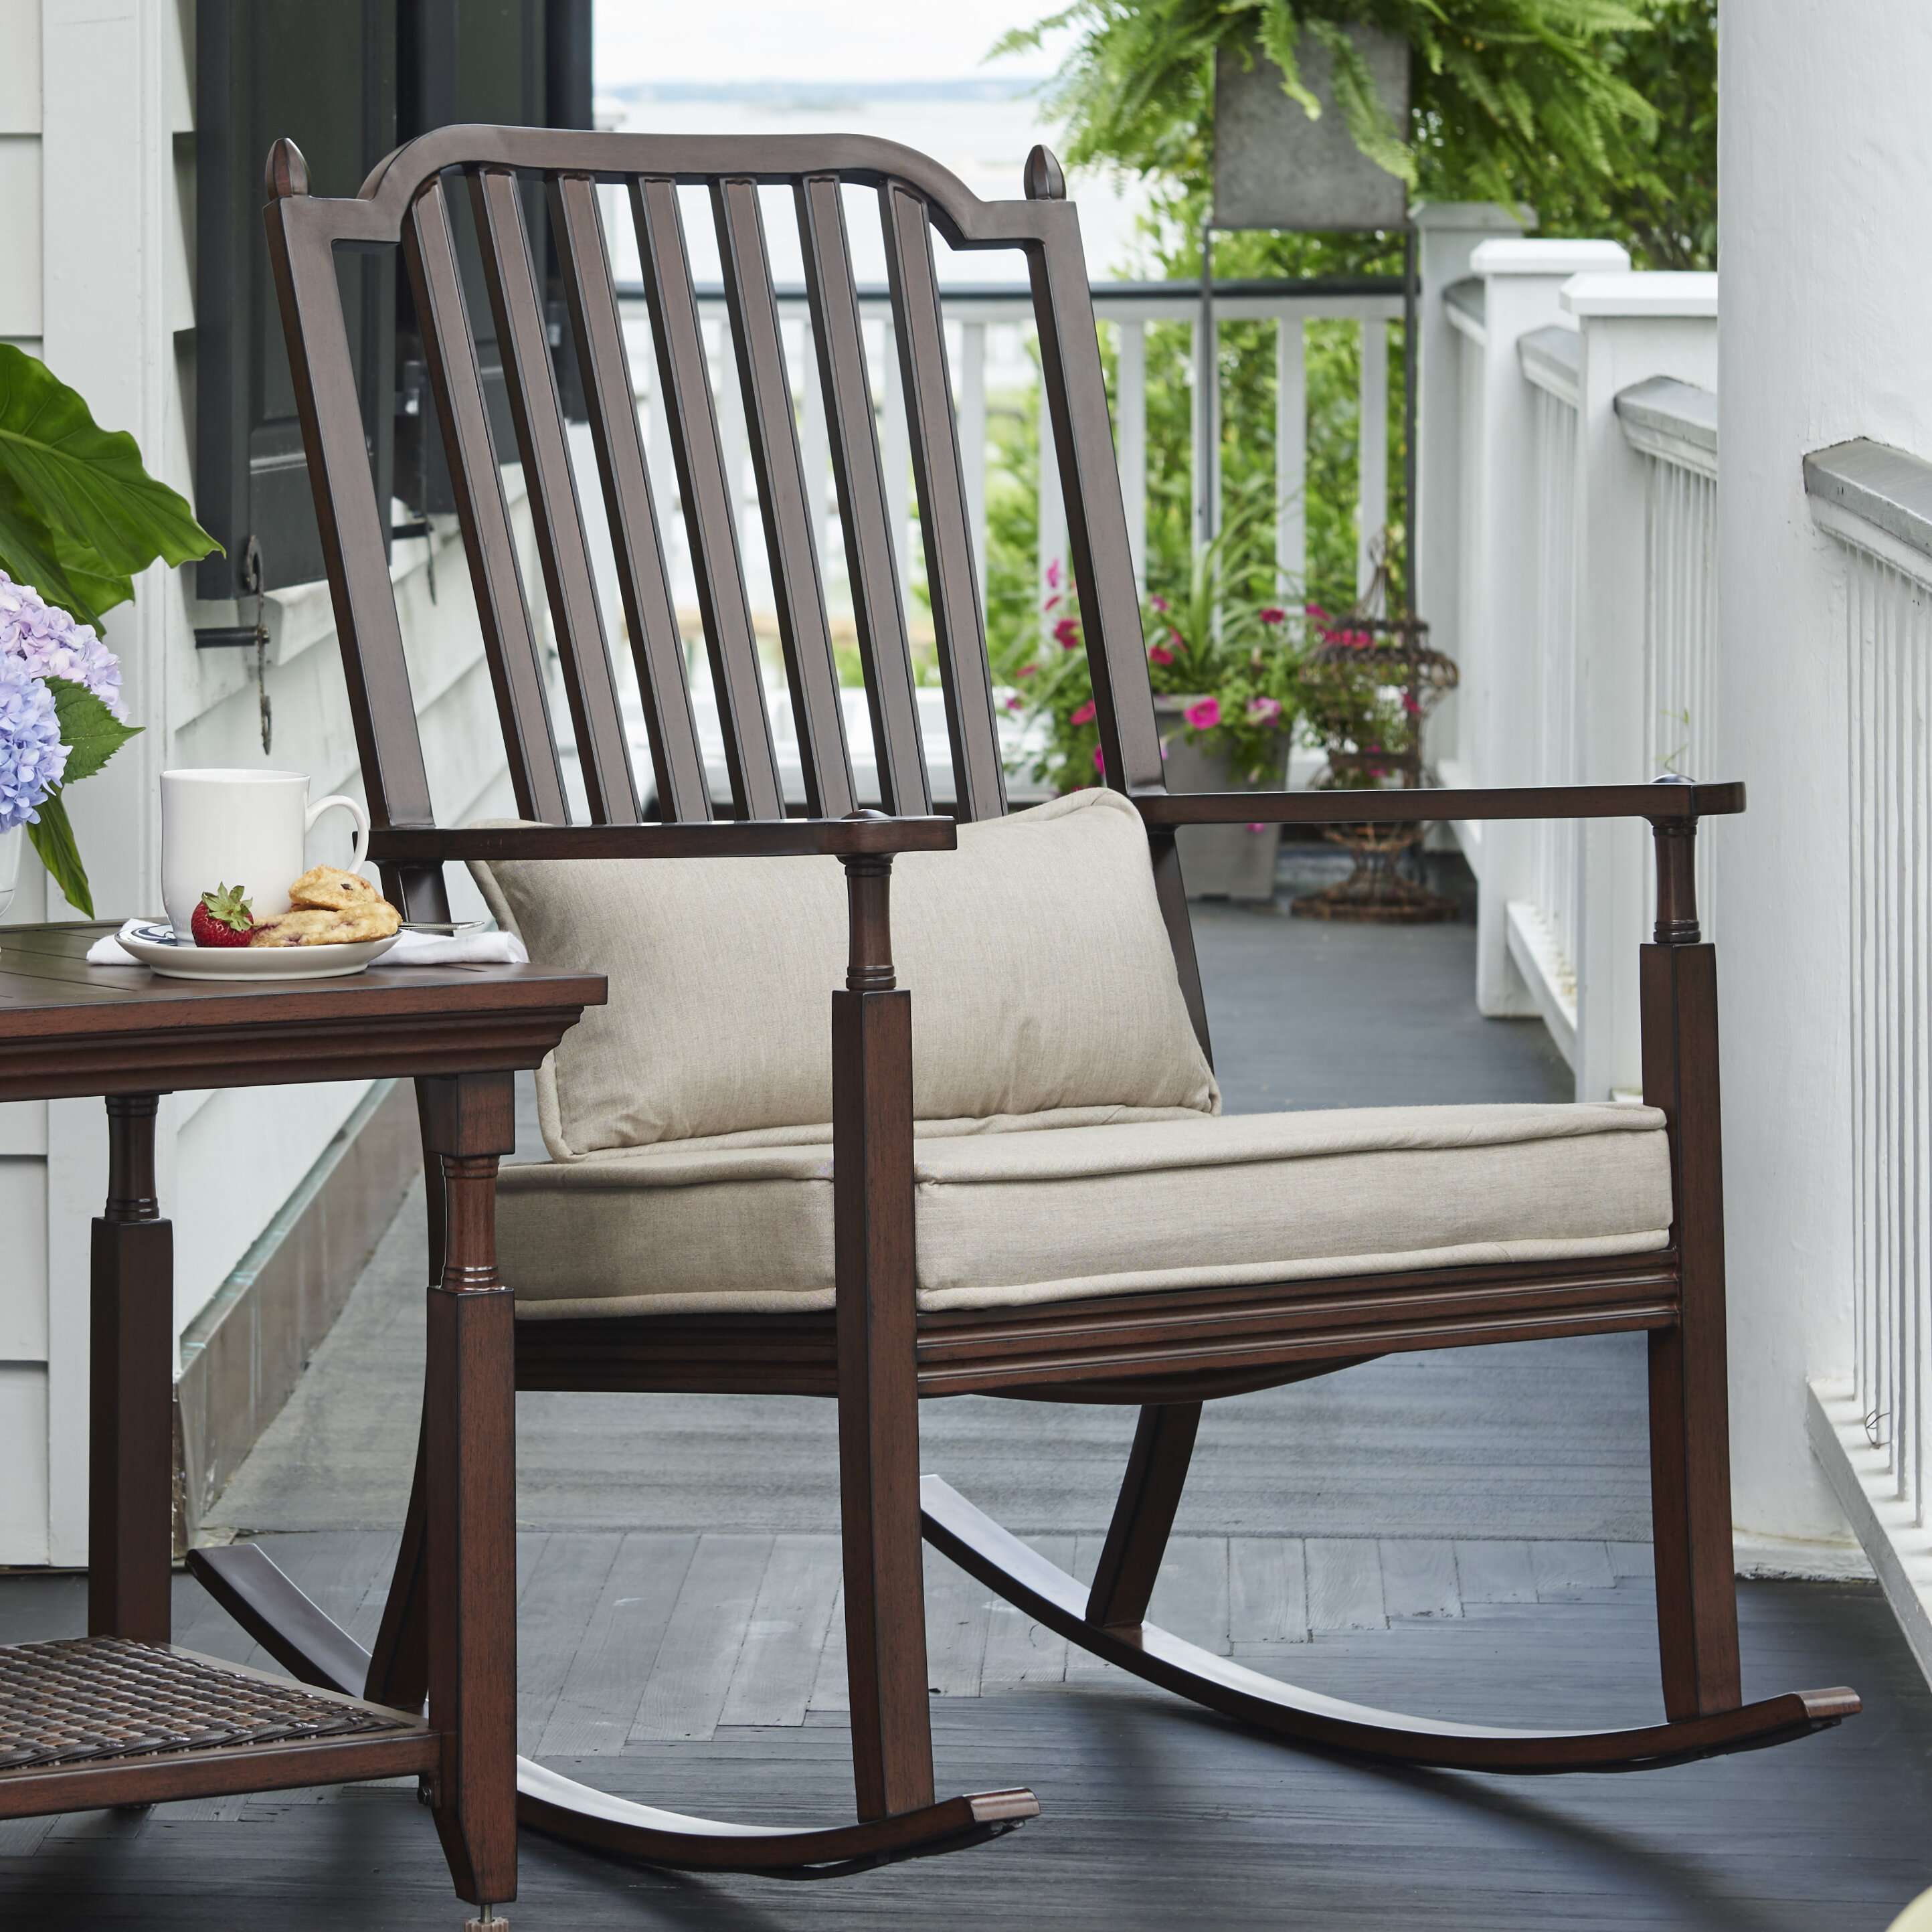 paula deen home river house porch rocking chair with cushions